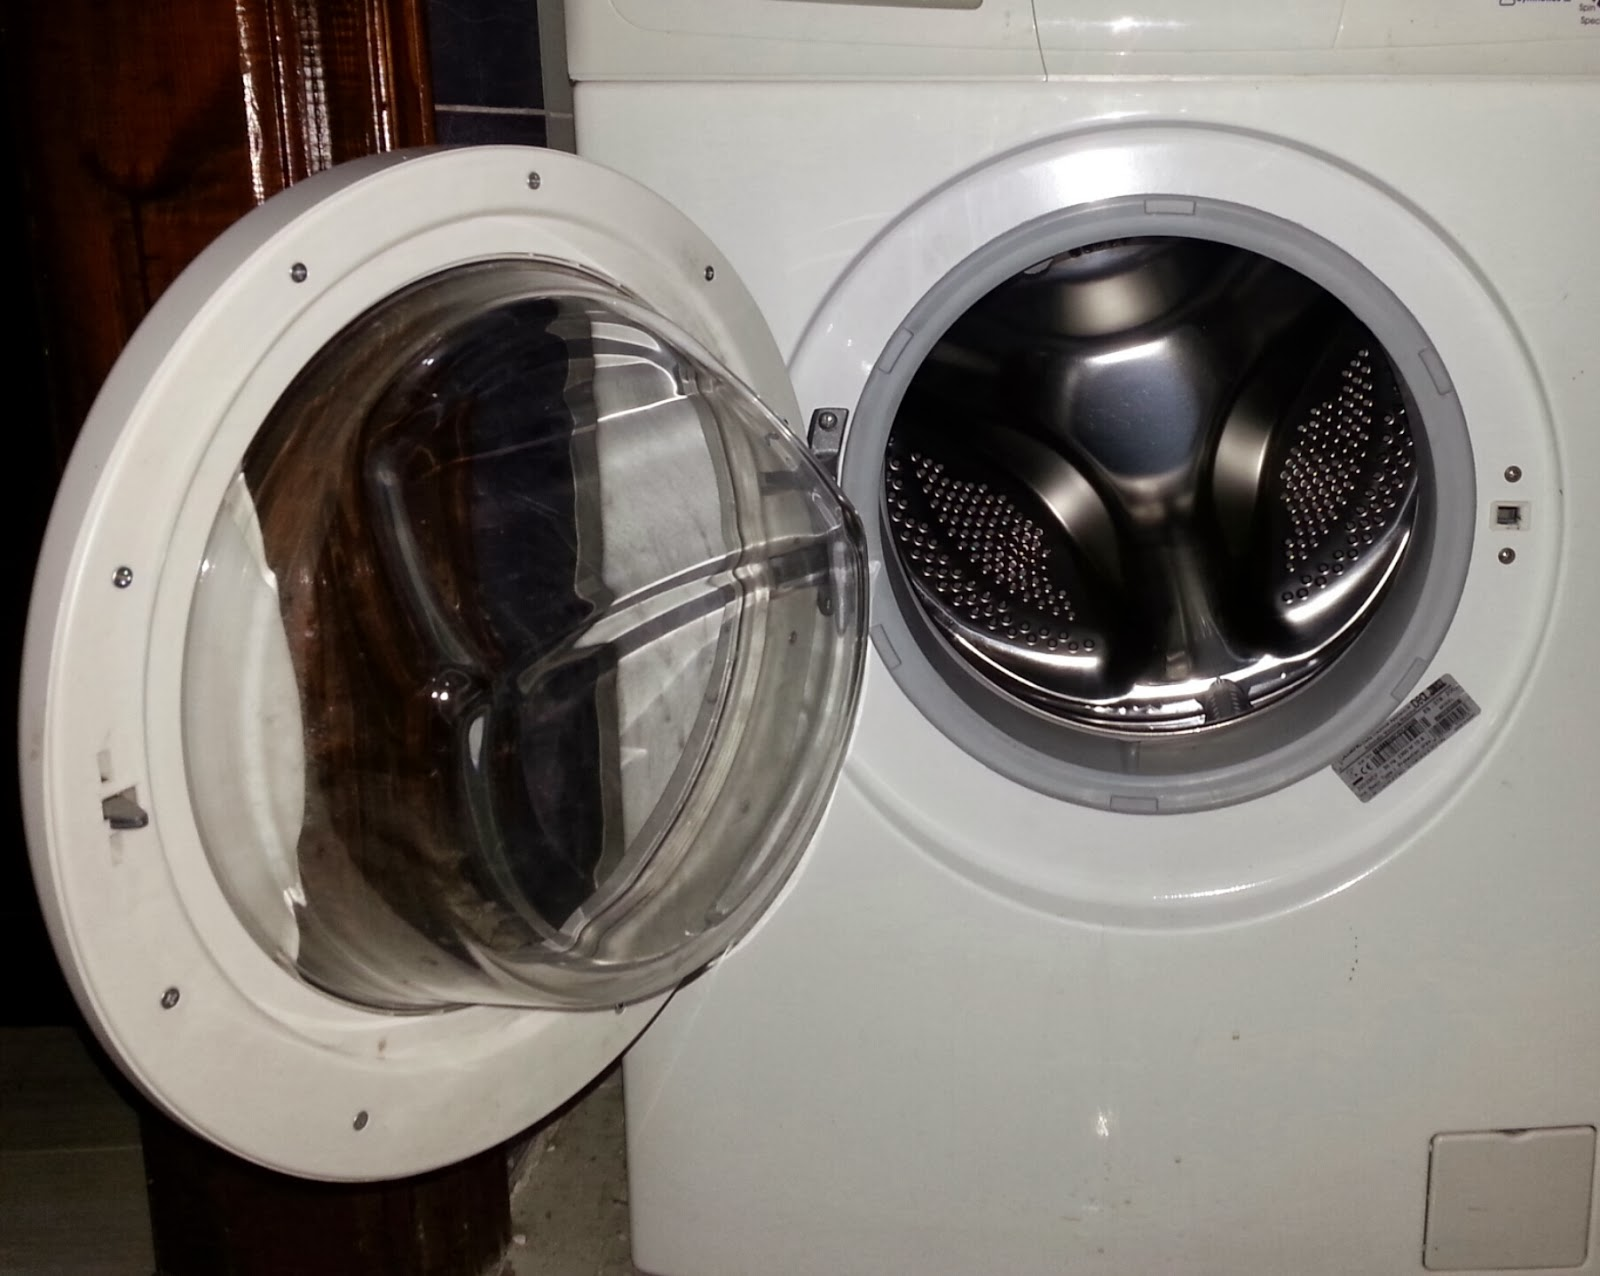 Tips To Keep A Front Loading Washing Machine Odor Free